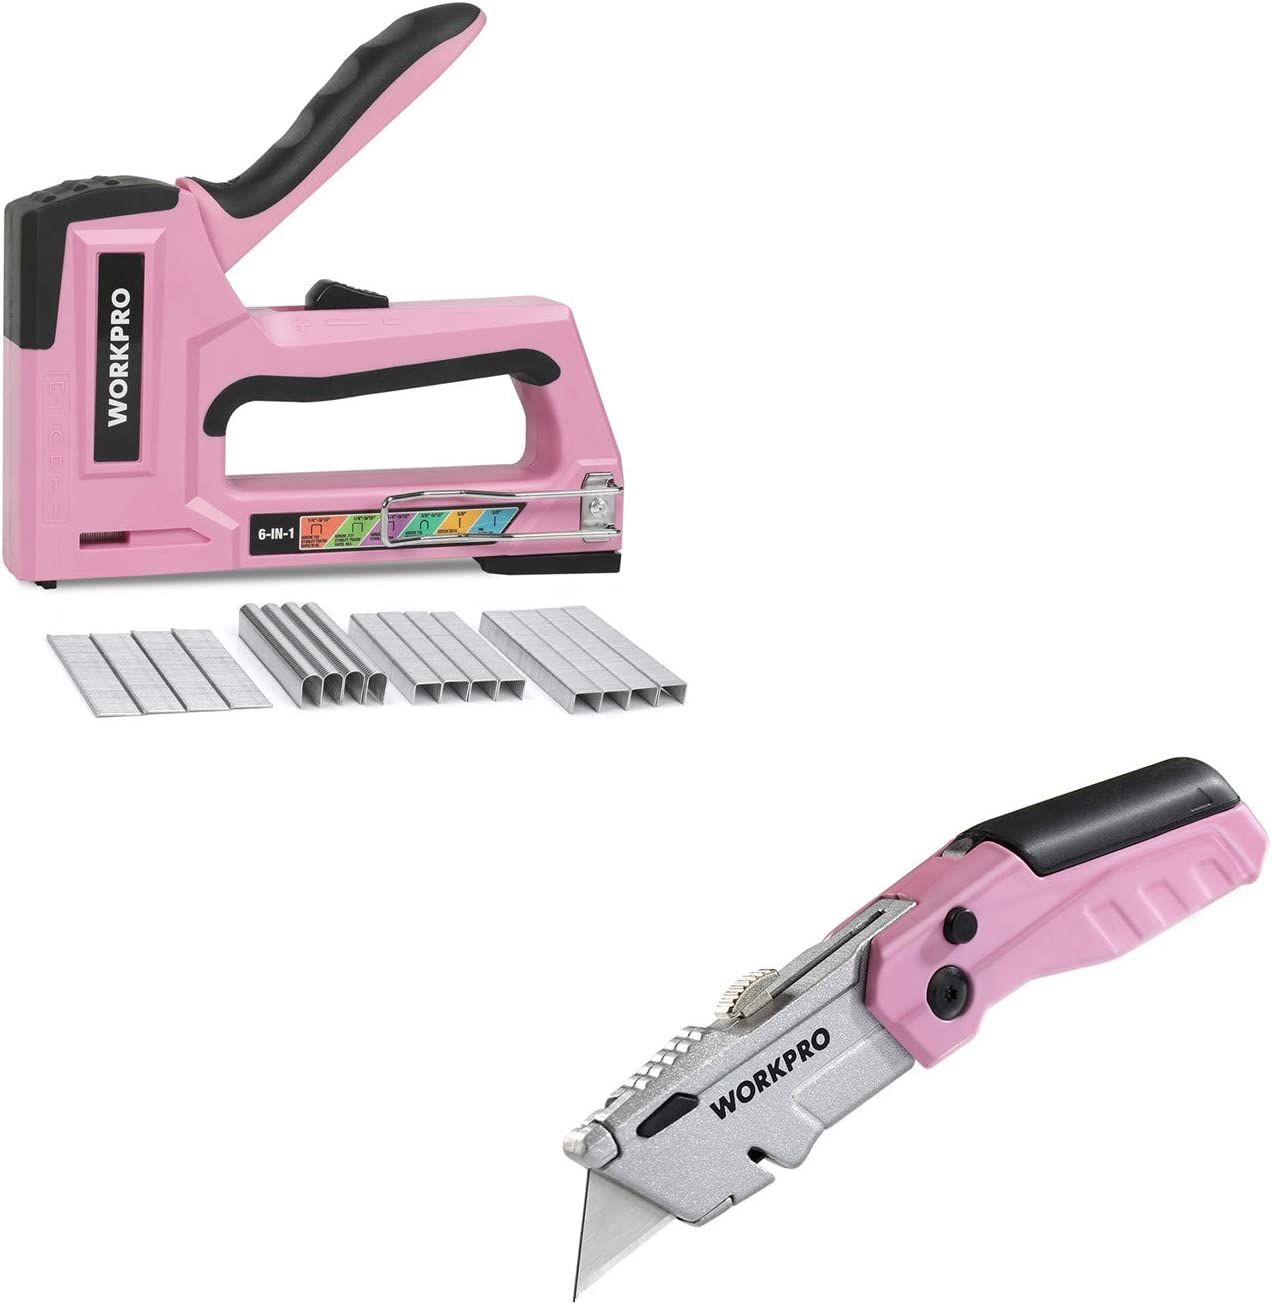 6-in-1 Manual Brad Nailer with 4000-Pieces Staples and Pink Folding Utility Knife 12 Extra Blades Included WORKPRO Pink Staple Gun